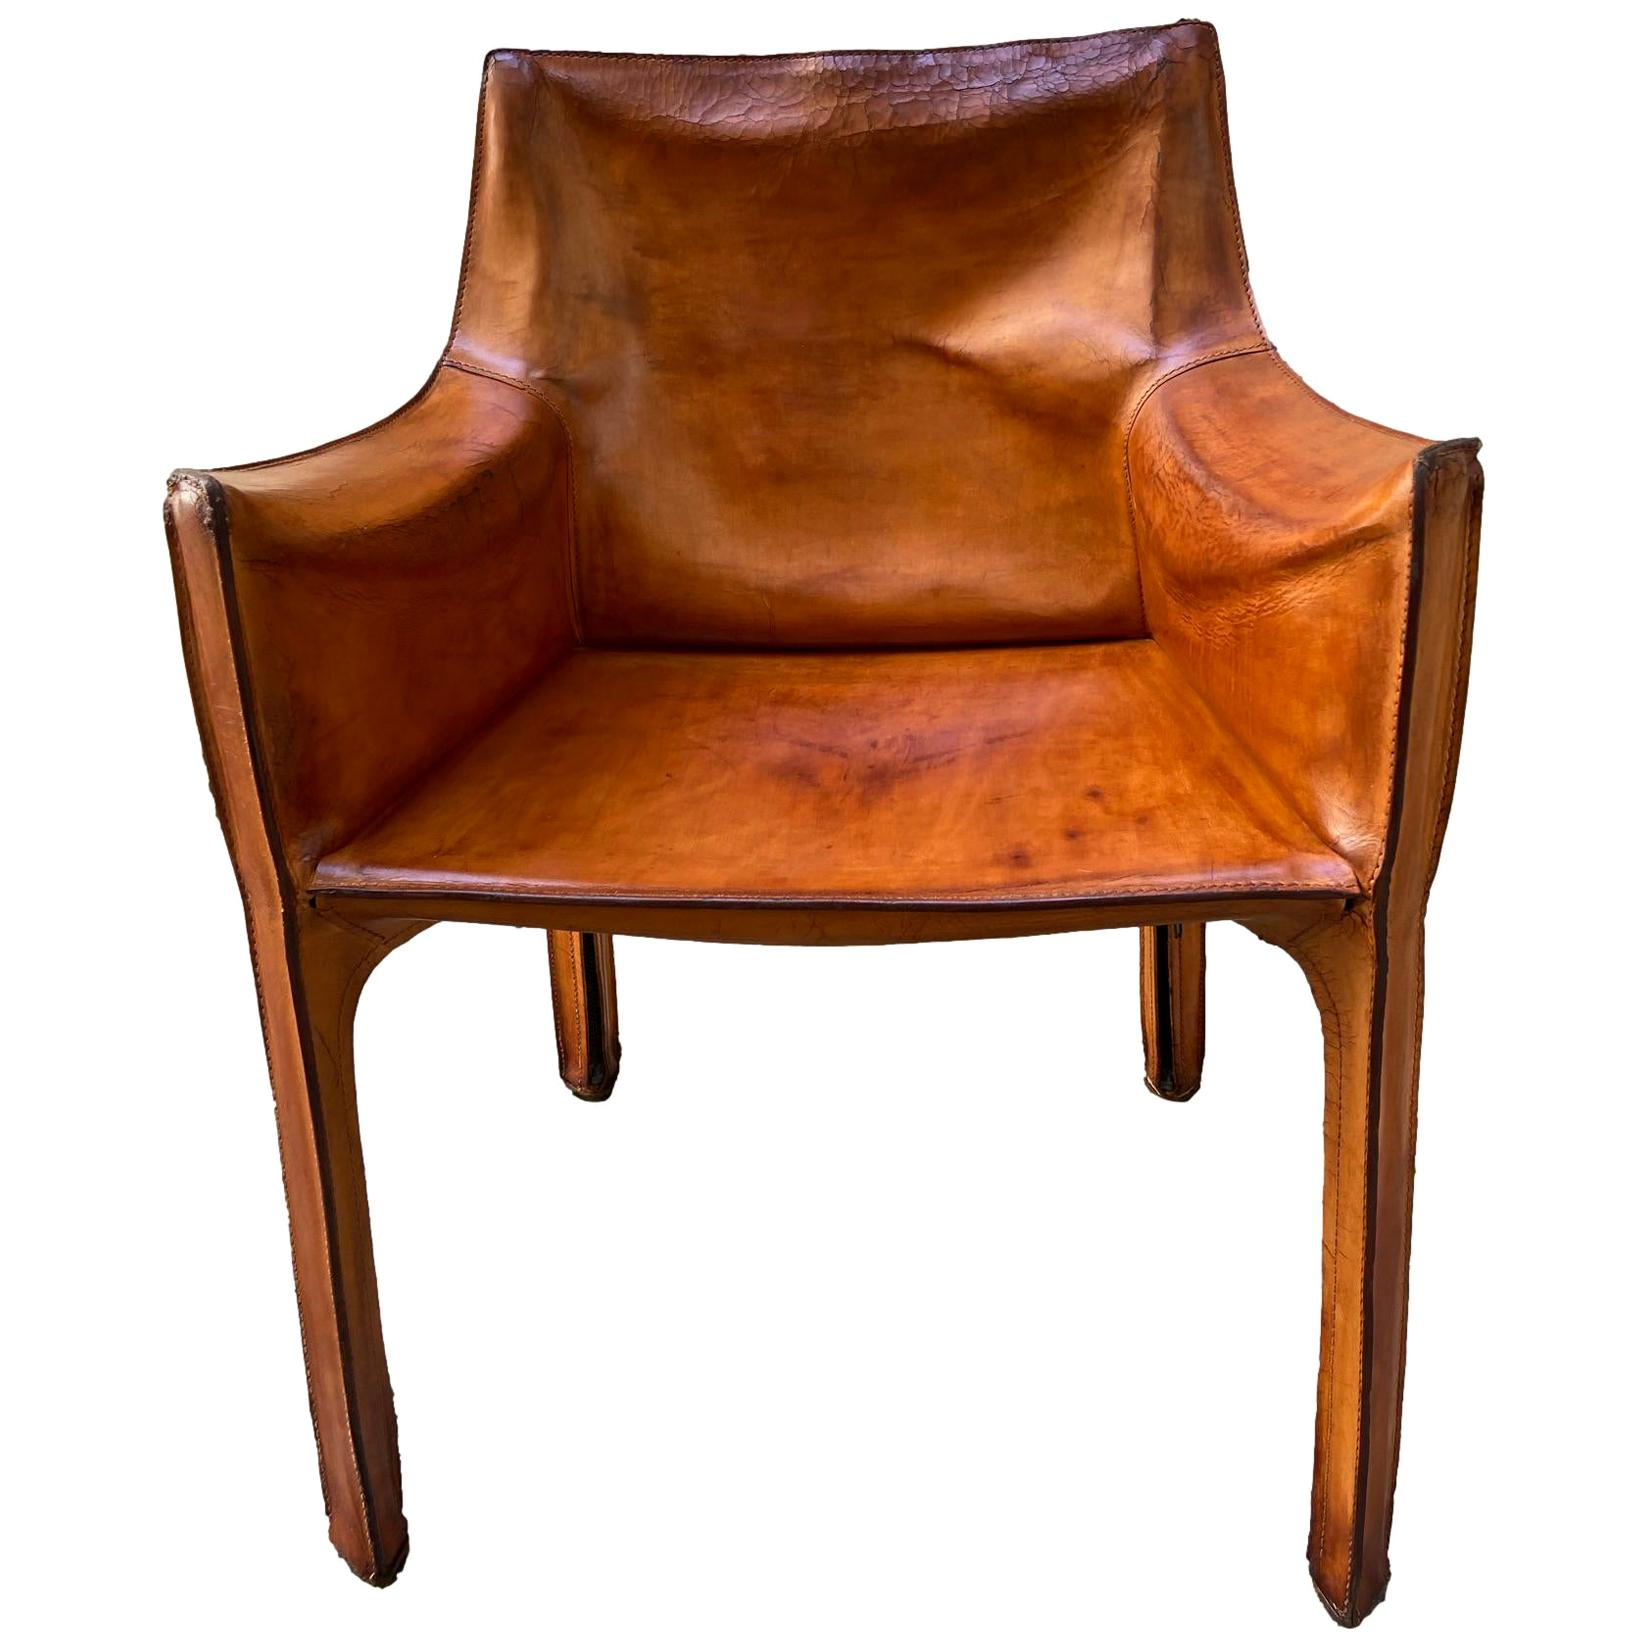 Mario Bellini for Cassina Leather Cab Lounge Chair, Italy, 1970s